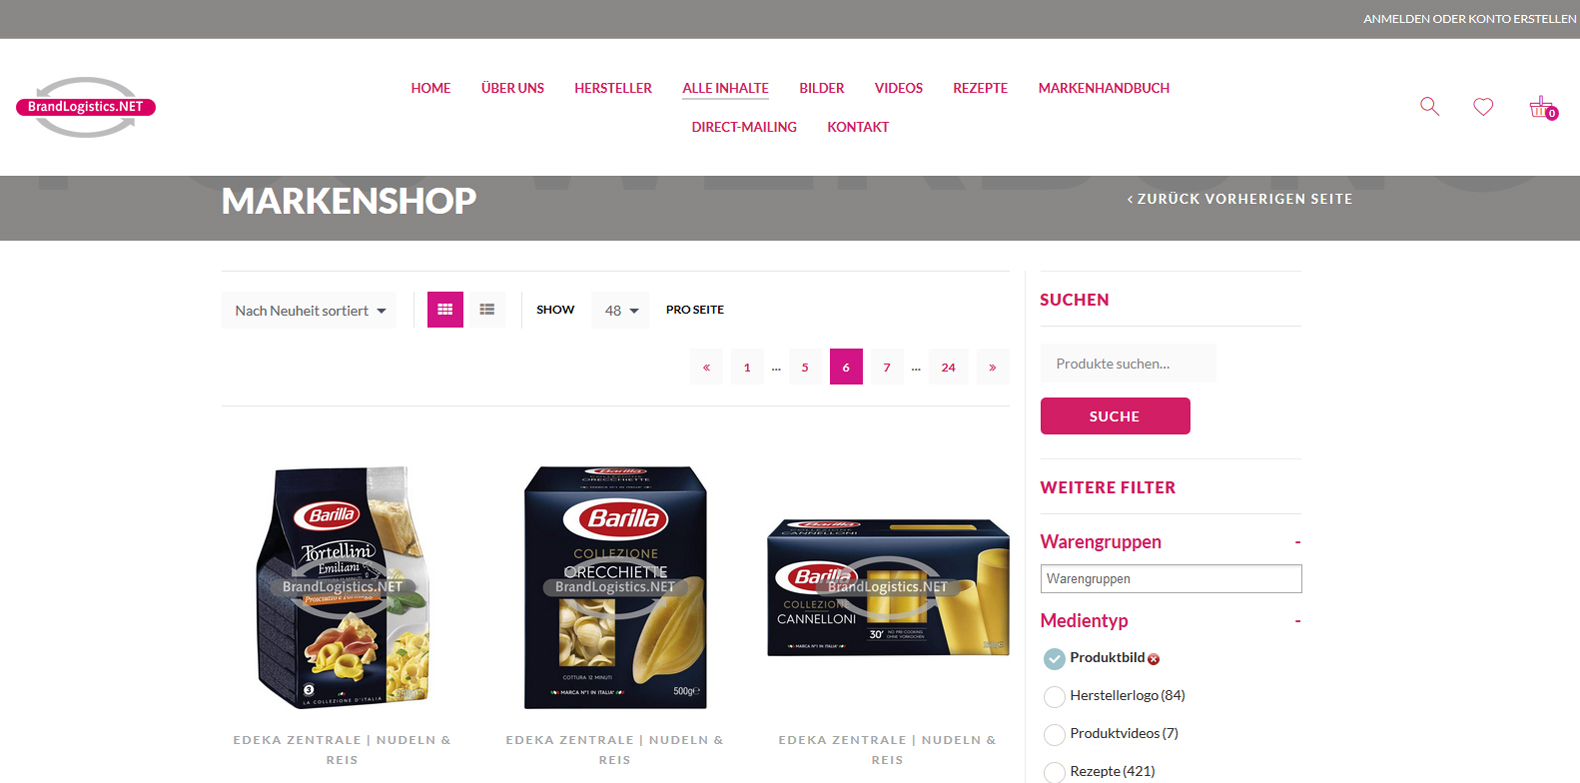 Woocommerce WPITCOM Digital Media Portal